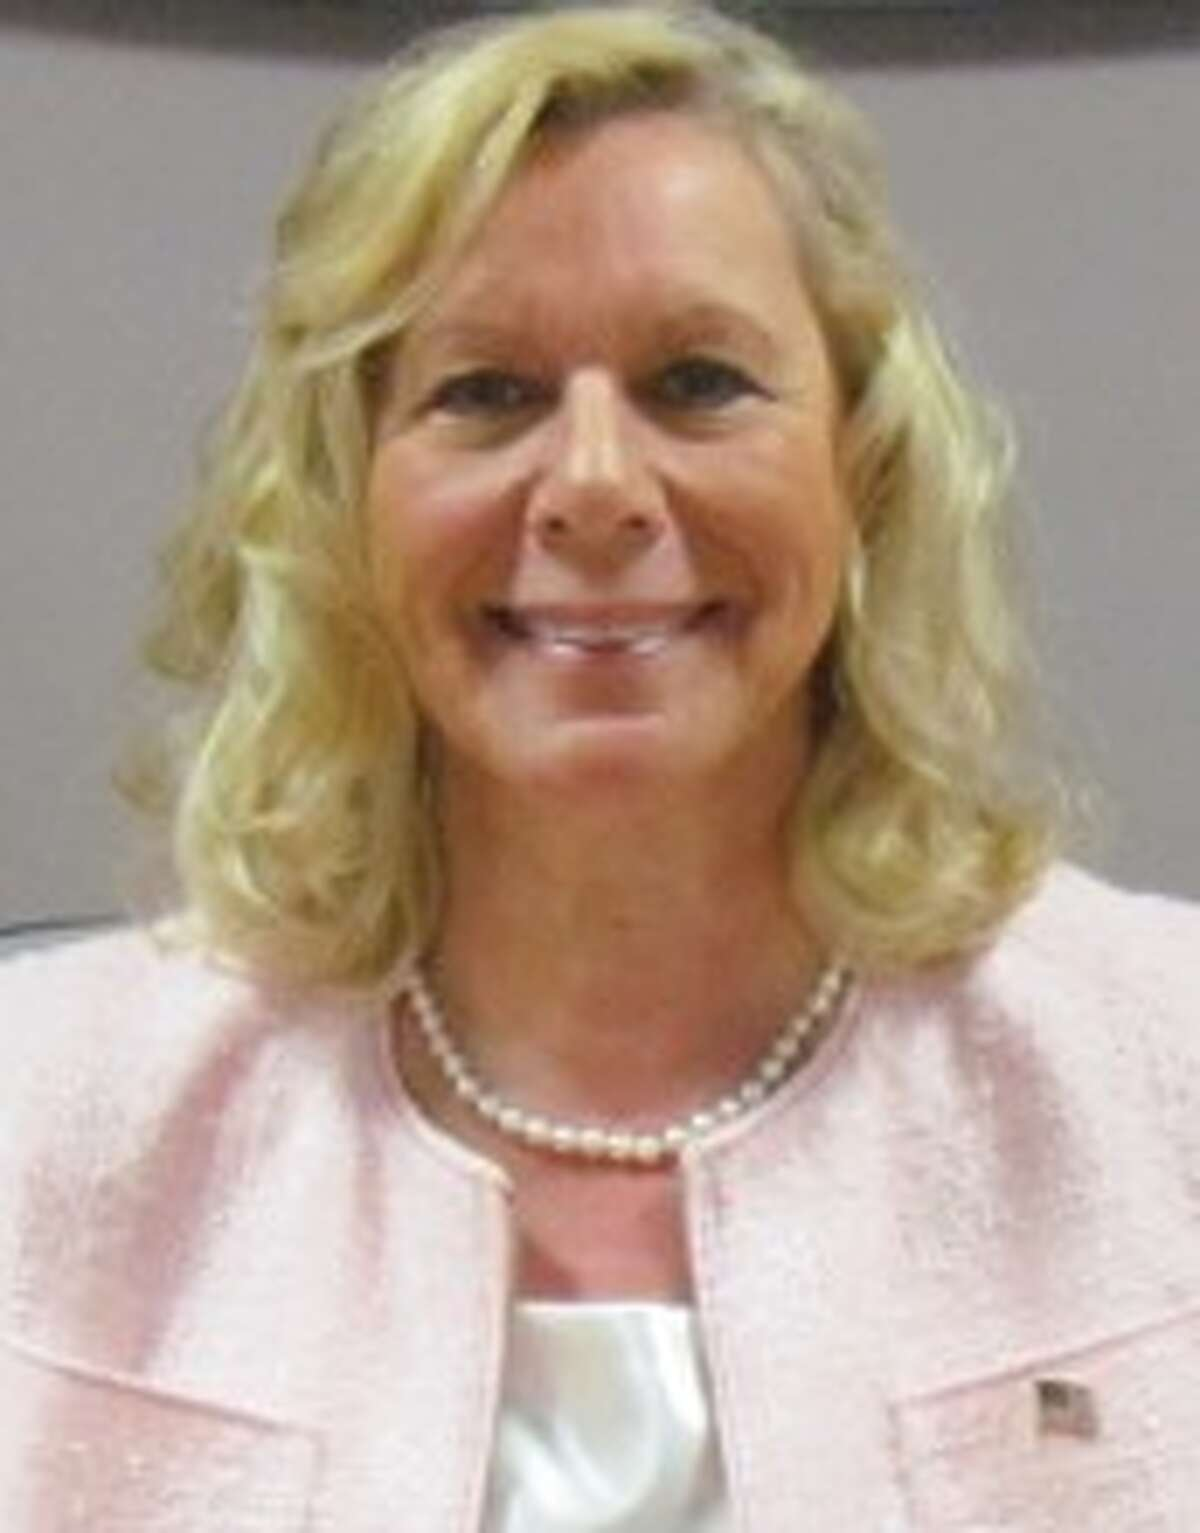 Malta Town Clerk Flo Sickels was investigated by the town's ethics committee in 2013 after a complaint was filed that she had made a deputy clerk work for the Malta Republican Committee. However, when the Times Union requested any and all documents related to the ethics committee for the last five years, they said there were none to provide. (Malta town website)